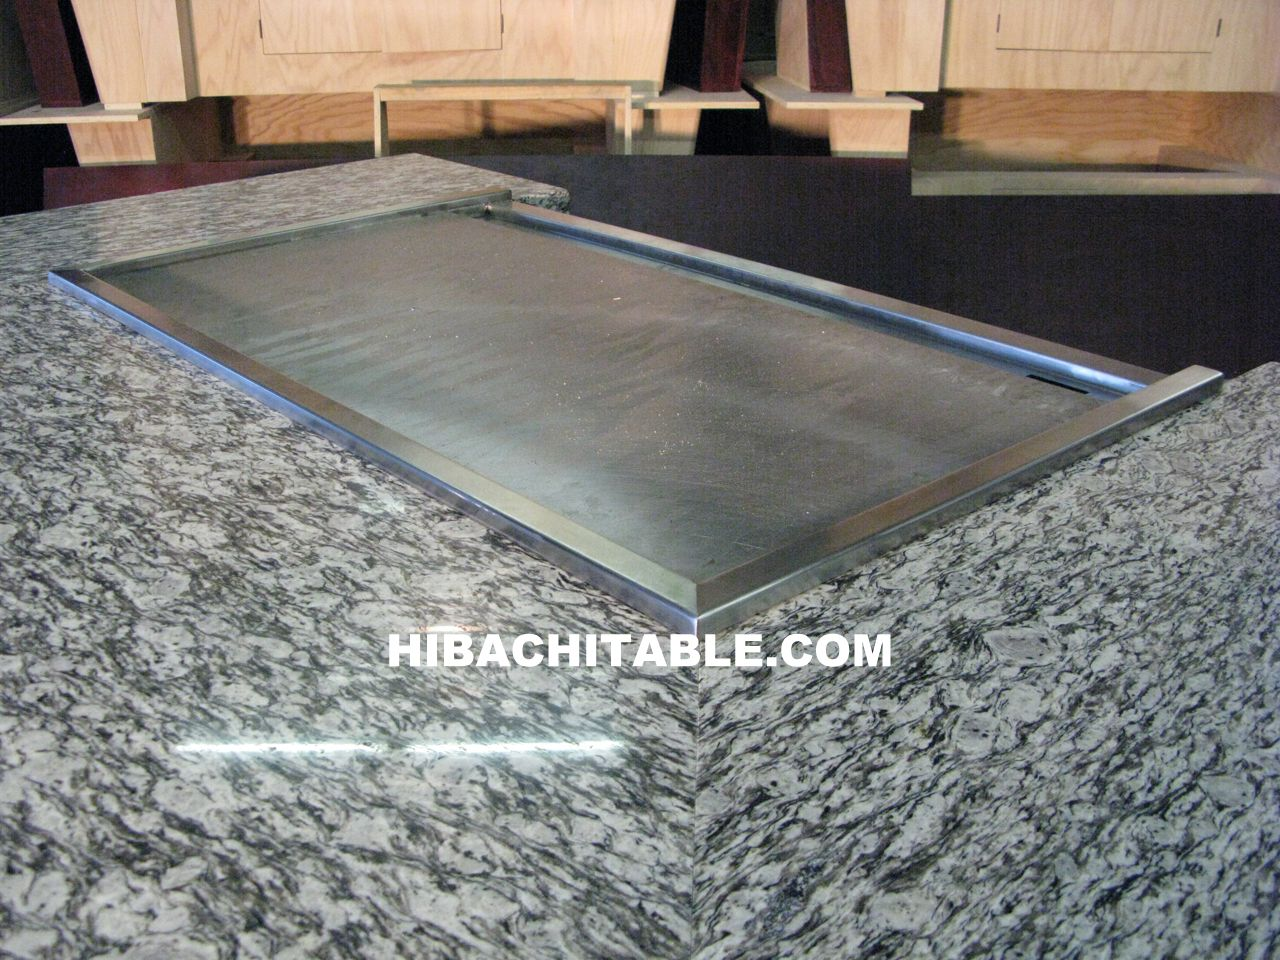 Hibachi Grills For The Home Table Teppanyaki Teppan